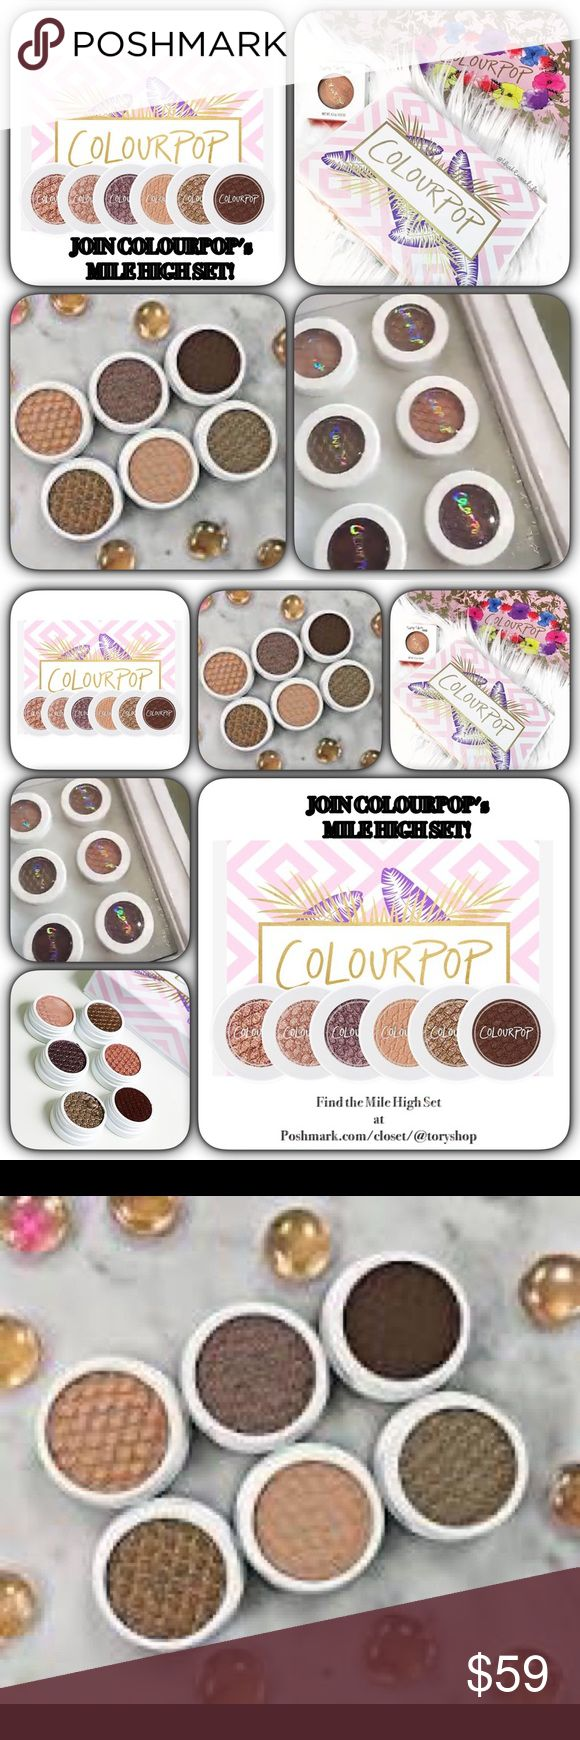 💞Nip/COLOURPOP's Mile High Shadow 6 Shadow SET💞 💞Nip/From COLOURPOP/6 coordinating Shadow SET! MILE HIGH! Colors include/1)Truth:neutral lgt beige shadow w satin finish/2)Nillionaire:wm bronze w tons of gold & multi coloured glitter w Metallic finish/3)So Quiche:soft olive w refelective gold/pink chrome metallic finish/4)LaLa: True Rose Gold in ULTRA METALLIC FINISH/5)Cricket:Smokey mid-tone plum w wrm & cool highlights w soft glitter/6)Mittens:deep wm brn w red violet undertone w matte…